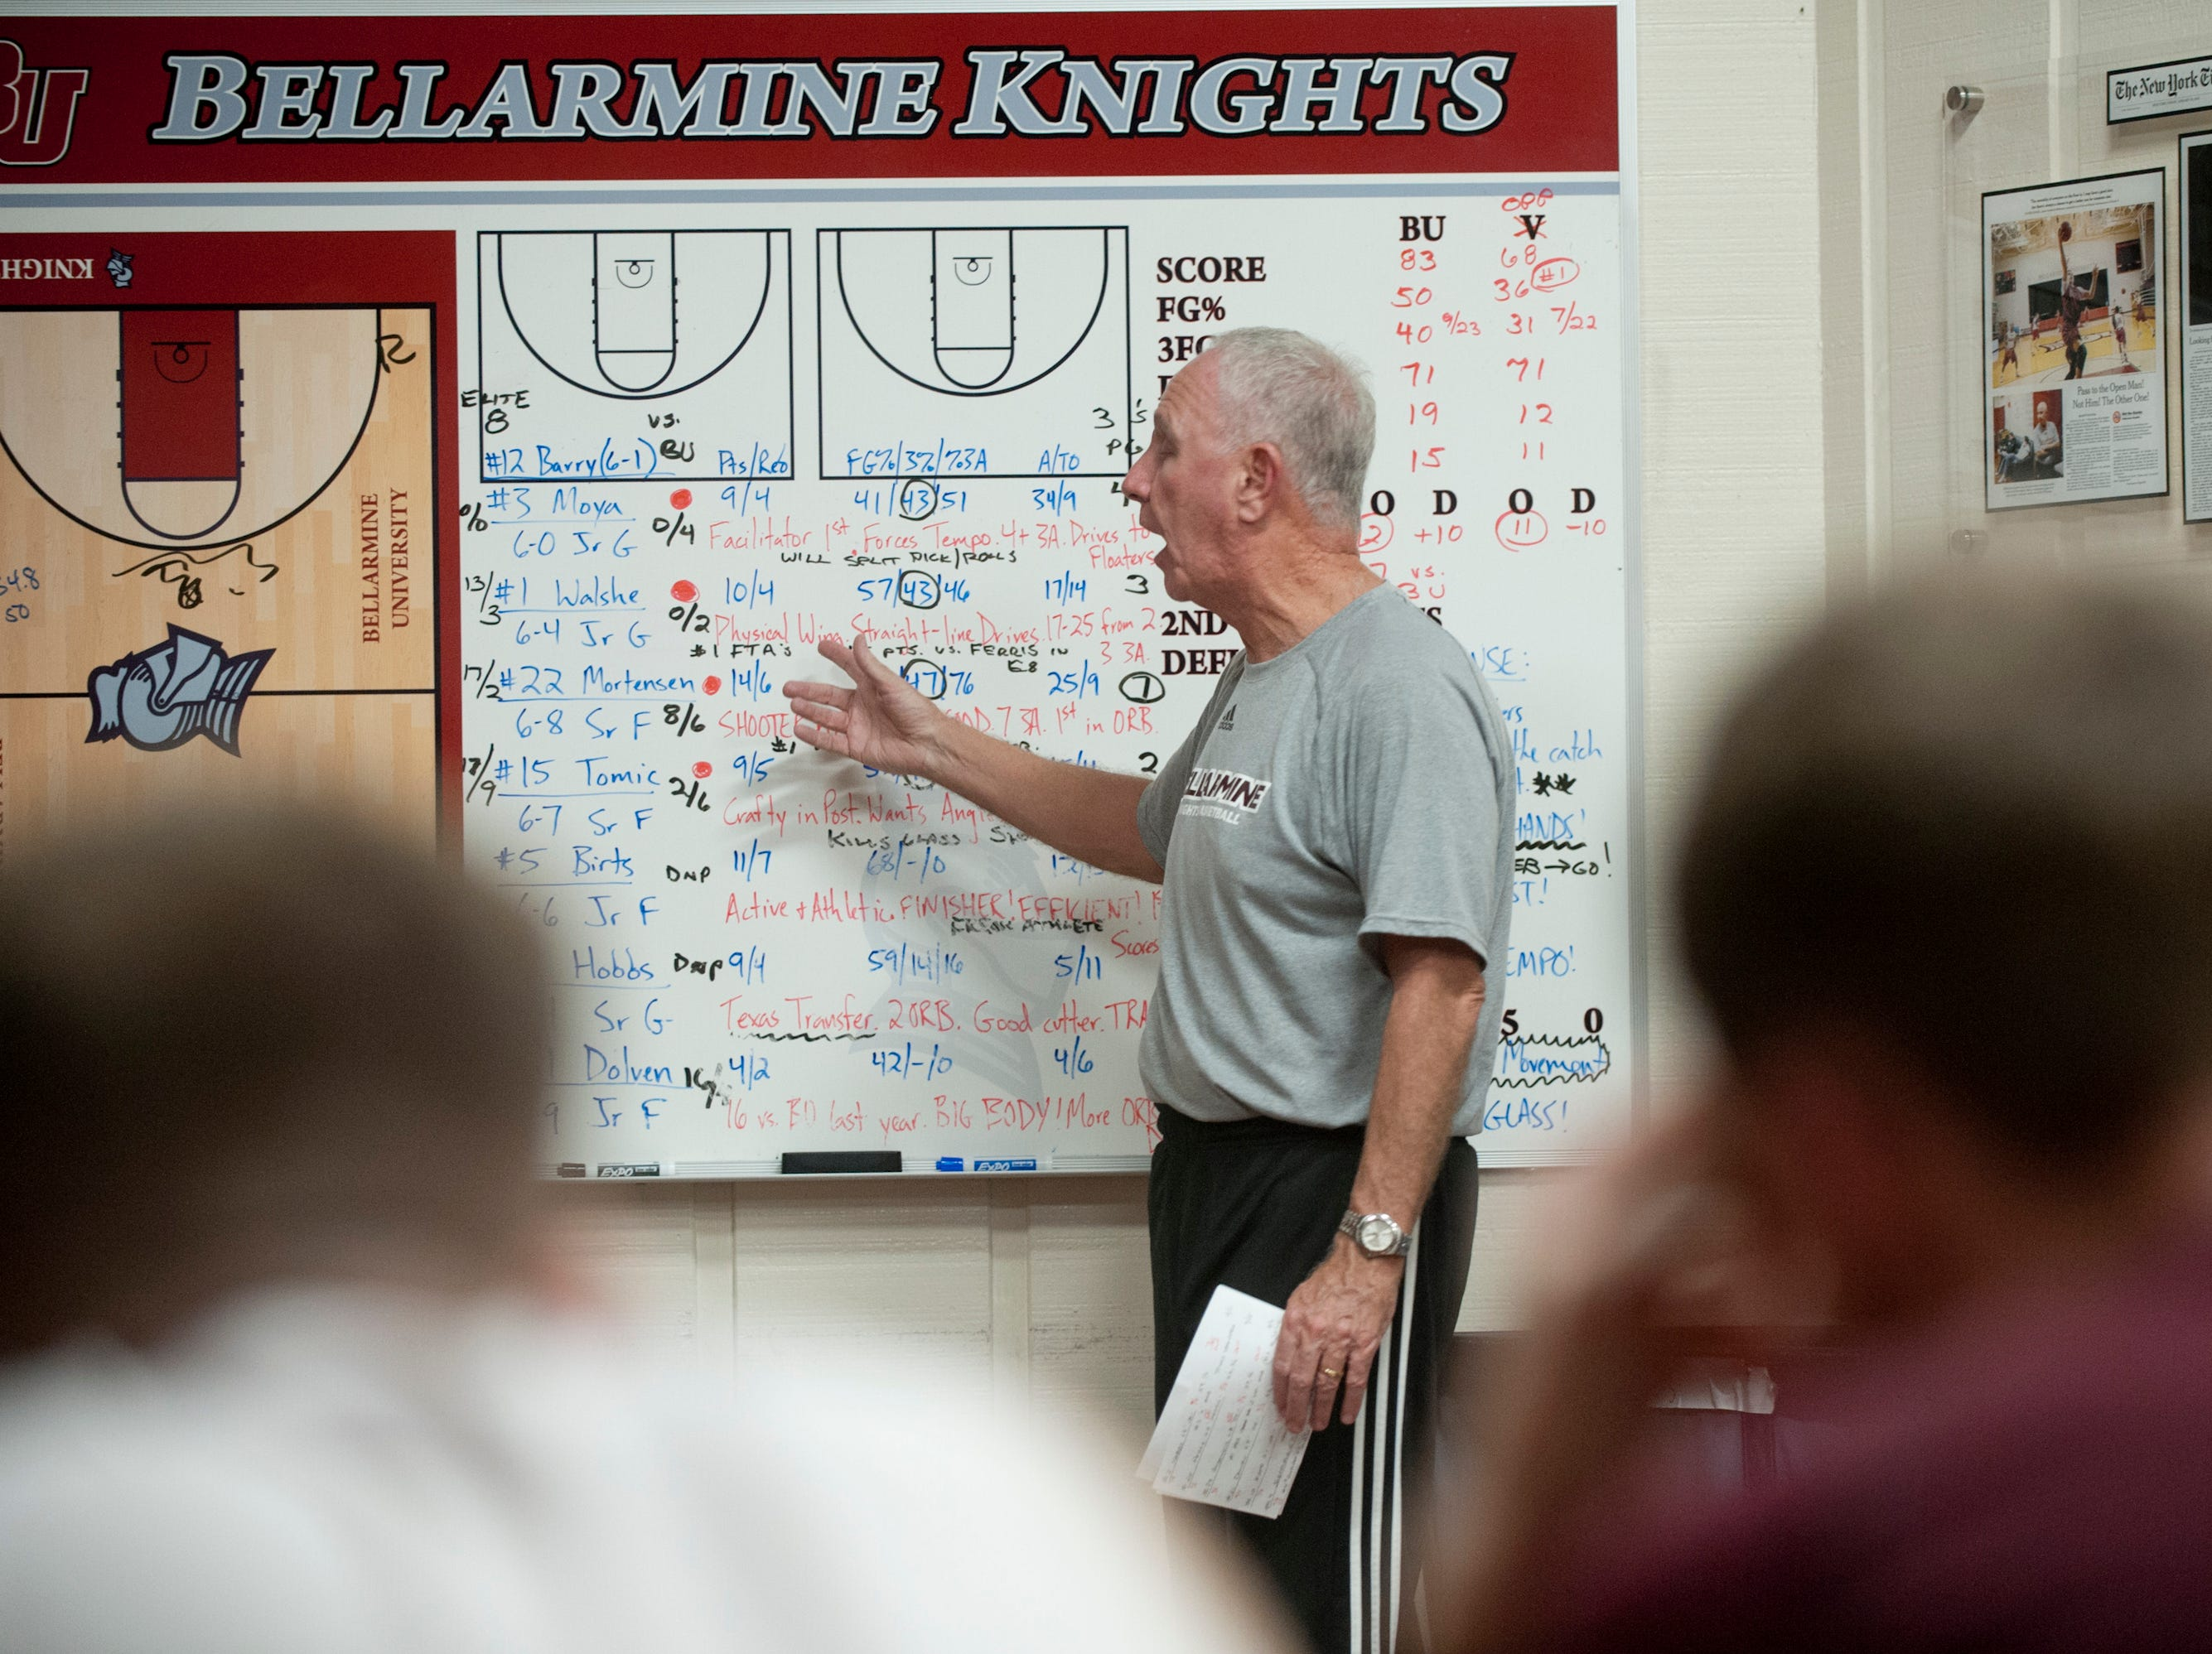 With the stat of all the opposing players displayed on a whiteboard behind him, Bellarmine head basketball coach Scott Davenport preps his team during a pre-game meeting in the locker room.18 December 2018